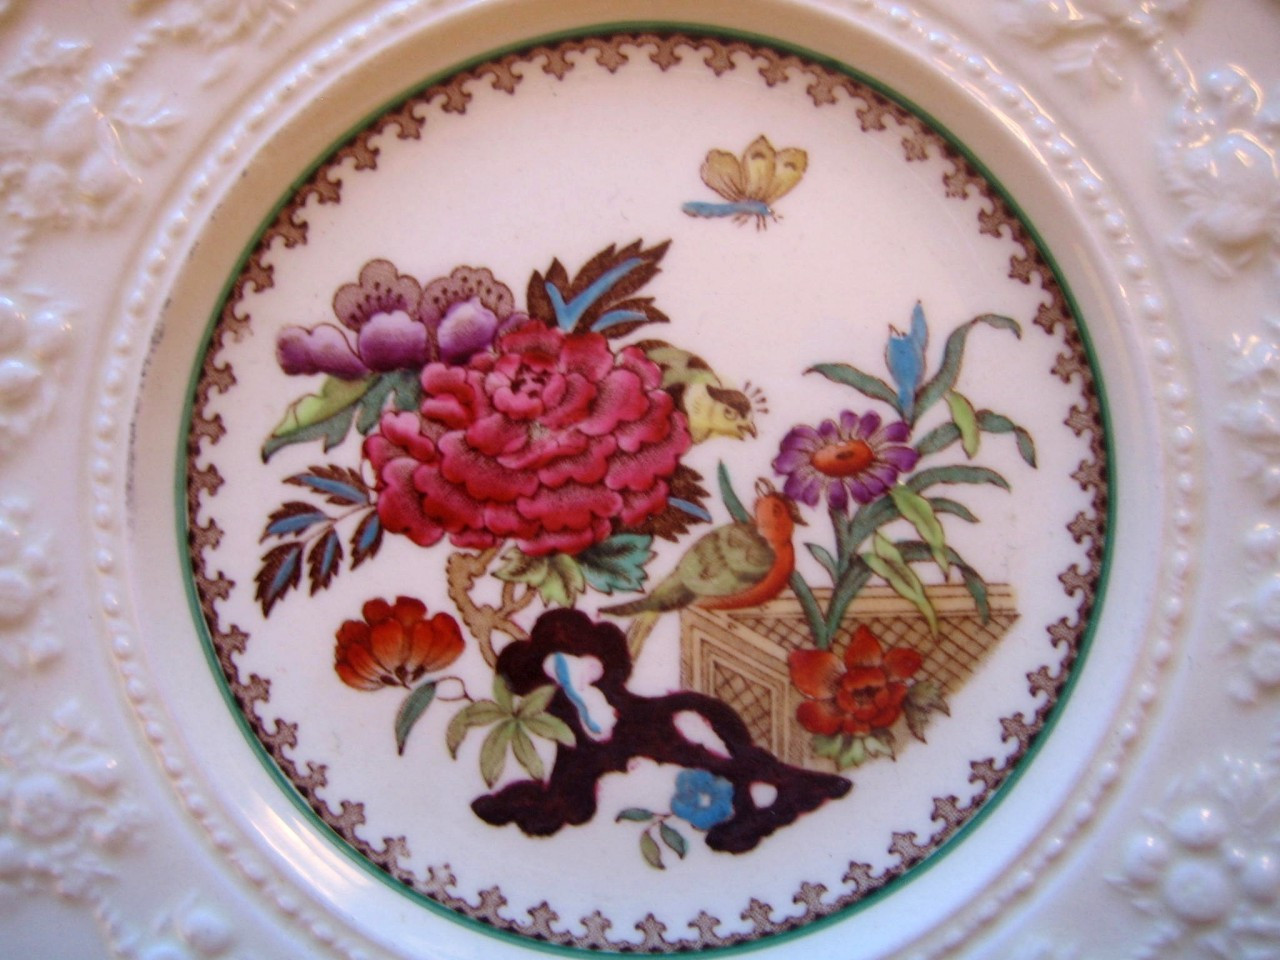 Chinoiserie Exotic Rose Birds Butterfly Textured Fruit Edge Plate Center www.DecorativeDishes.net